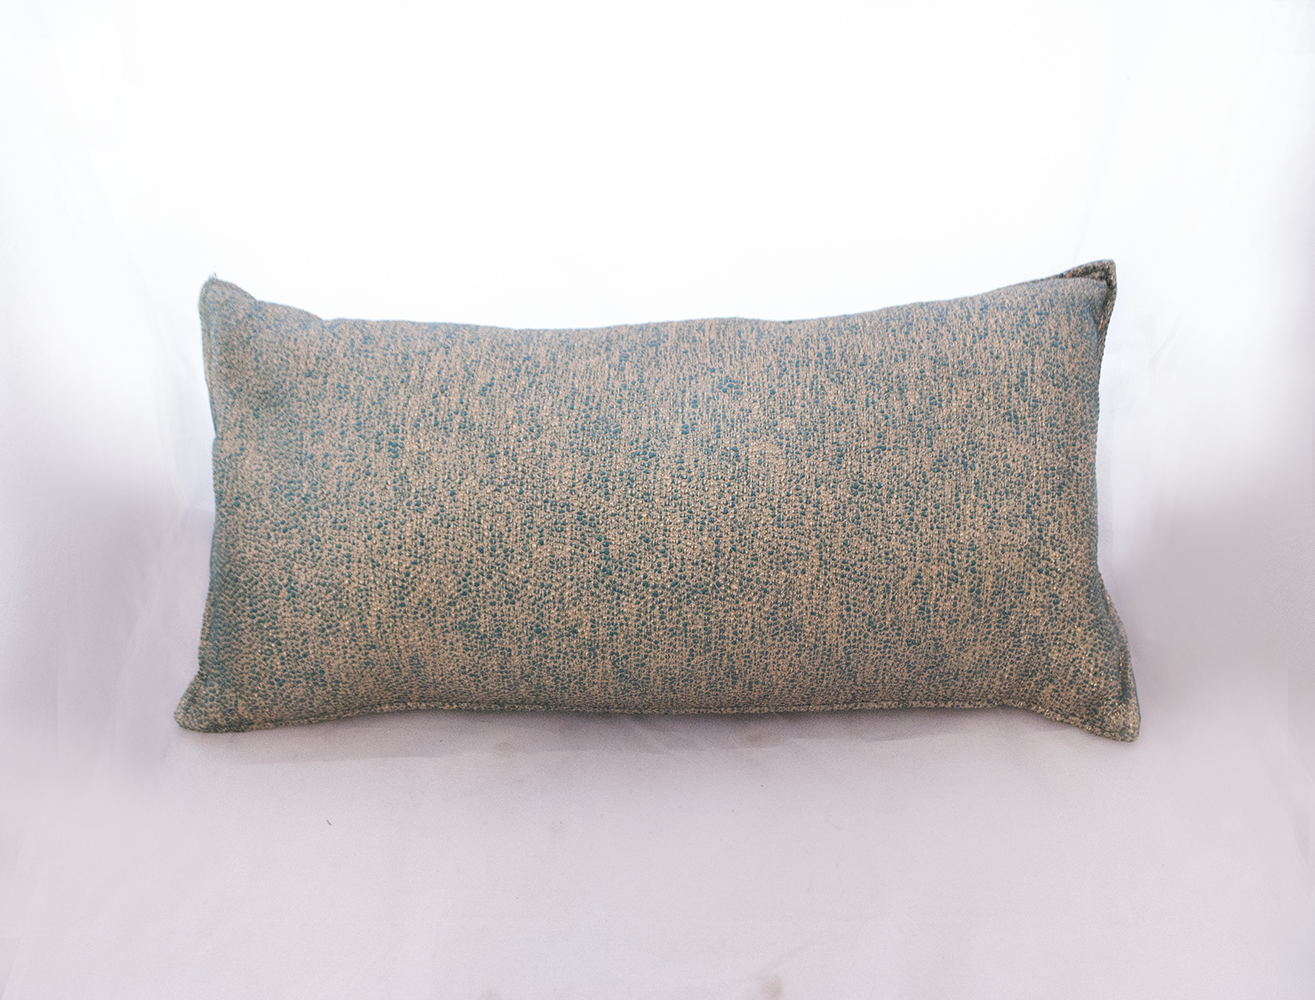 Gold & Teal pillow   Quantity: 1  Price: $10.00